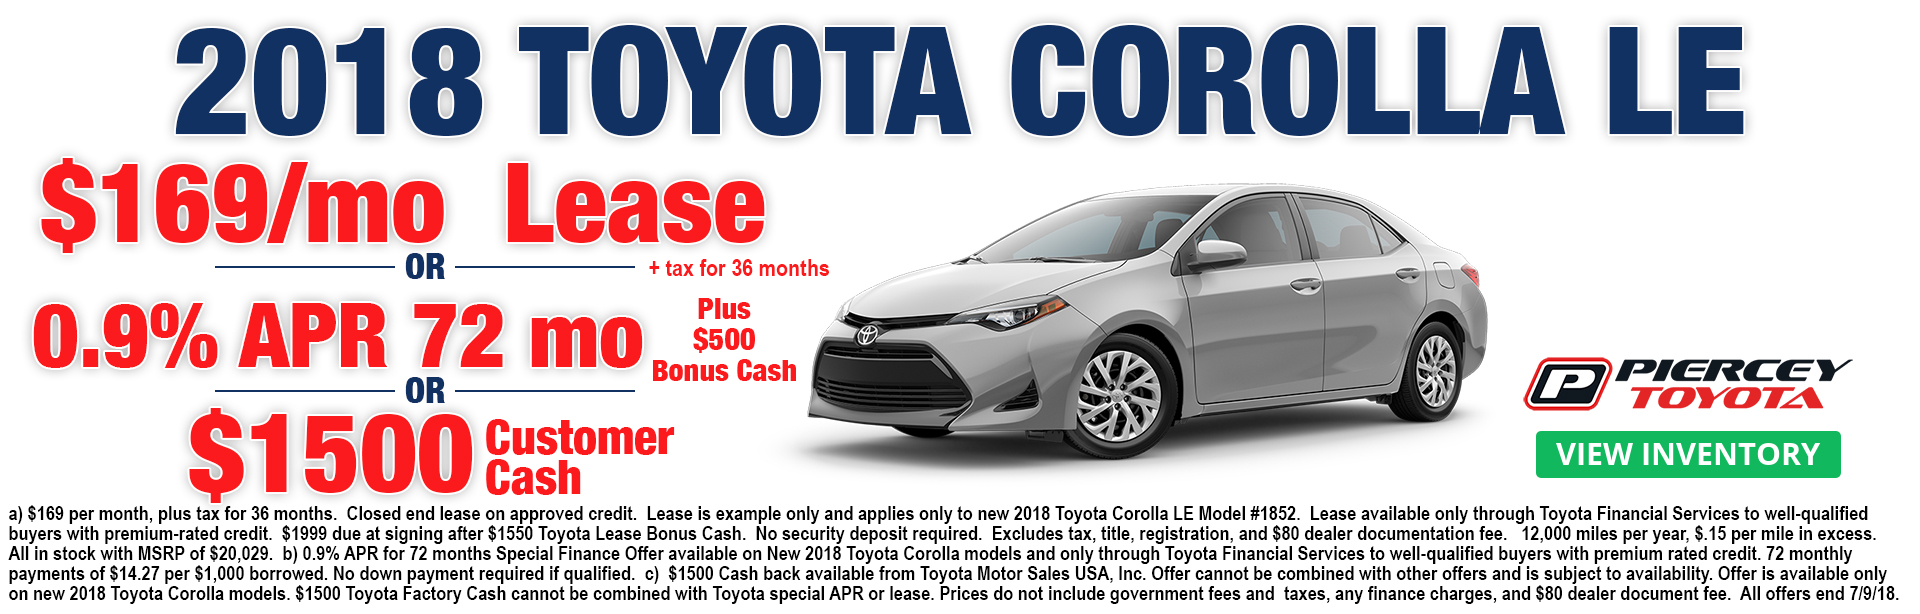 learn sc ca dealer jose creek san toyota bay stevens your us about more area